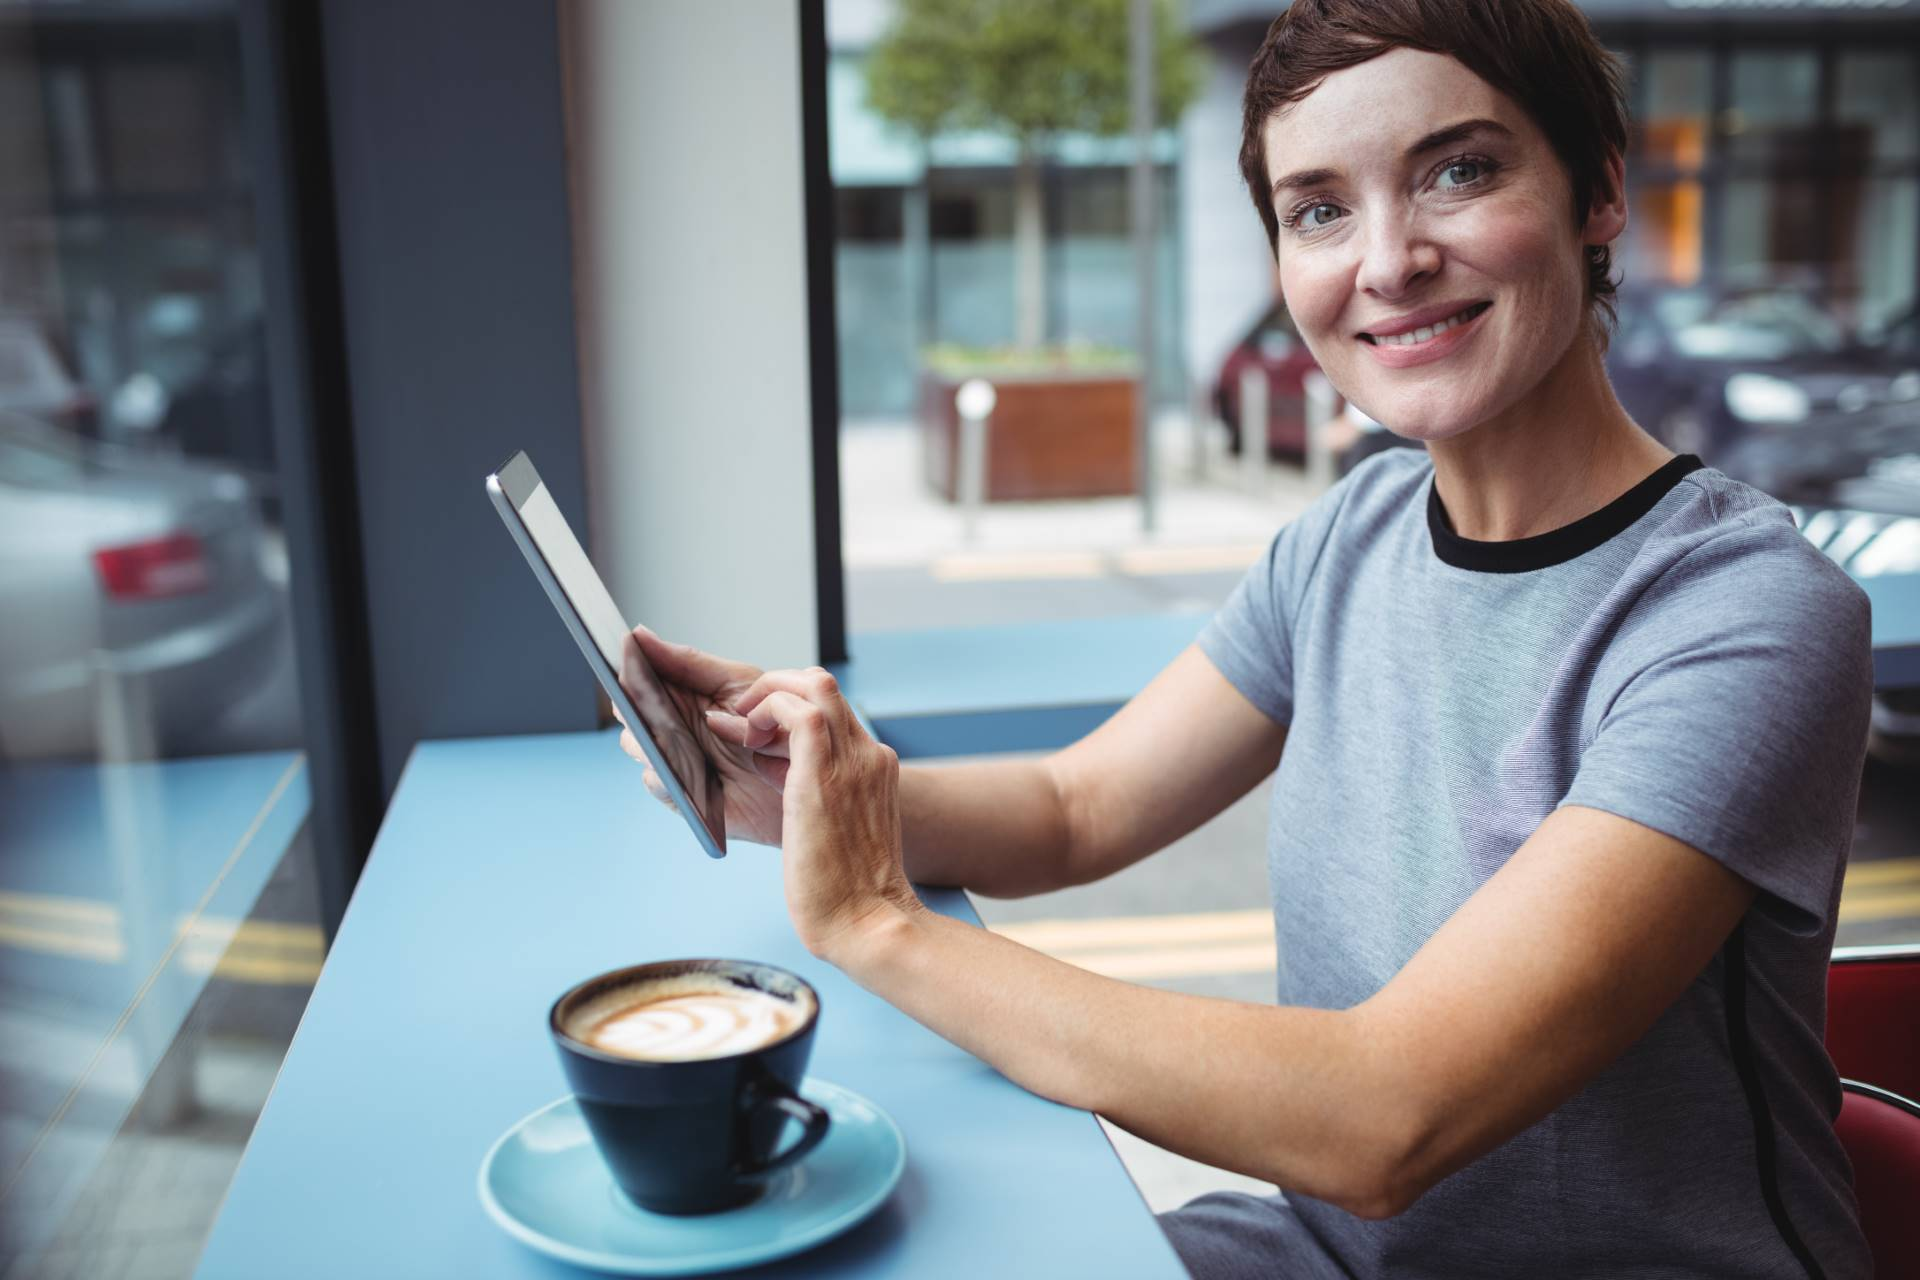 Portrait of businesswoman using digital tablet while having coffee in office